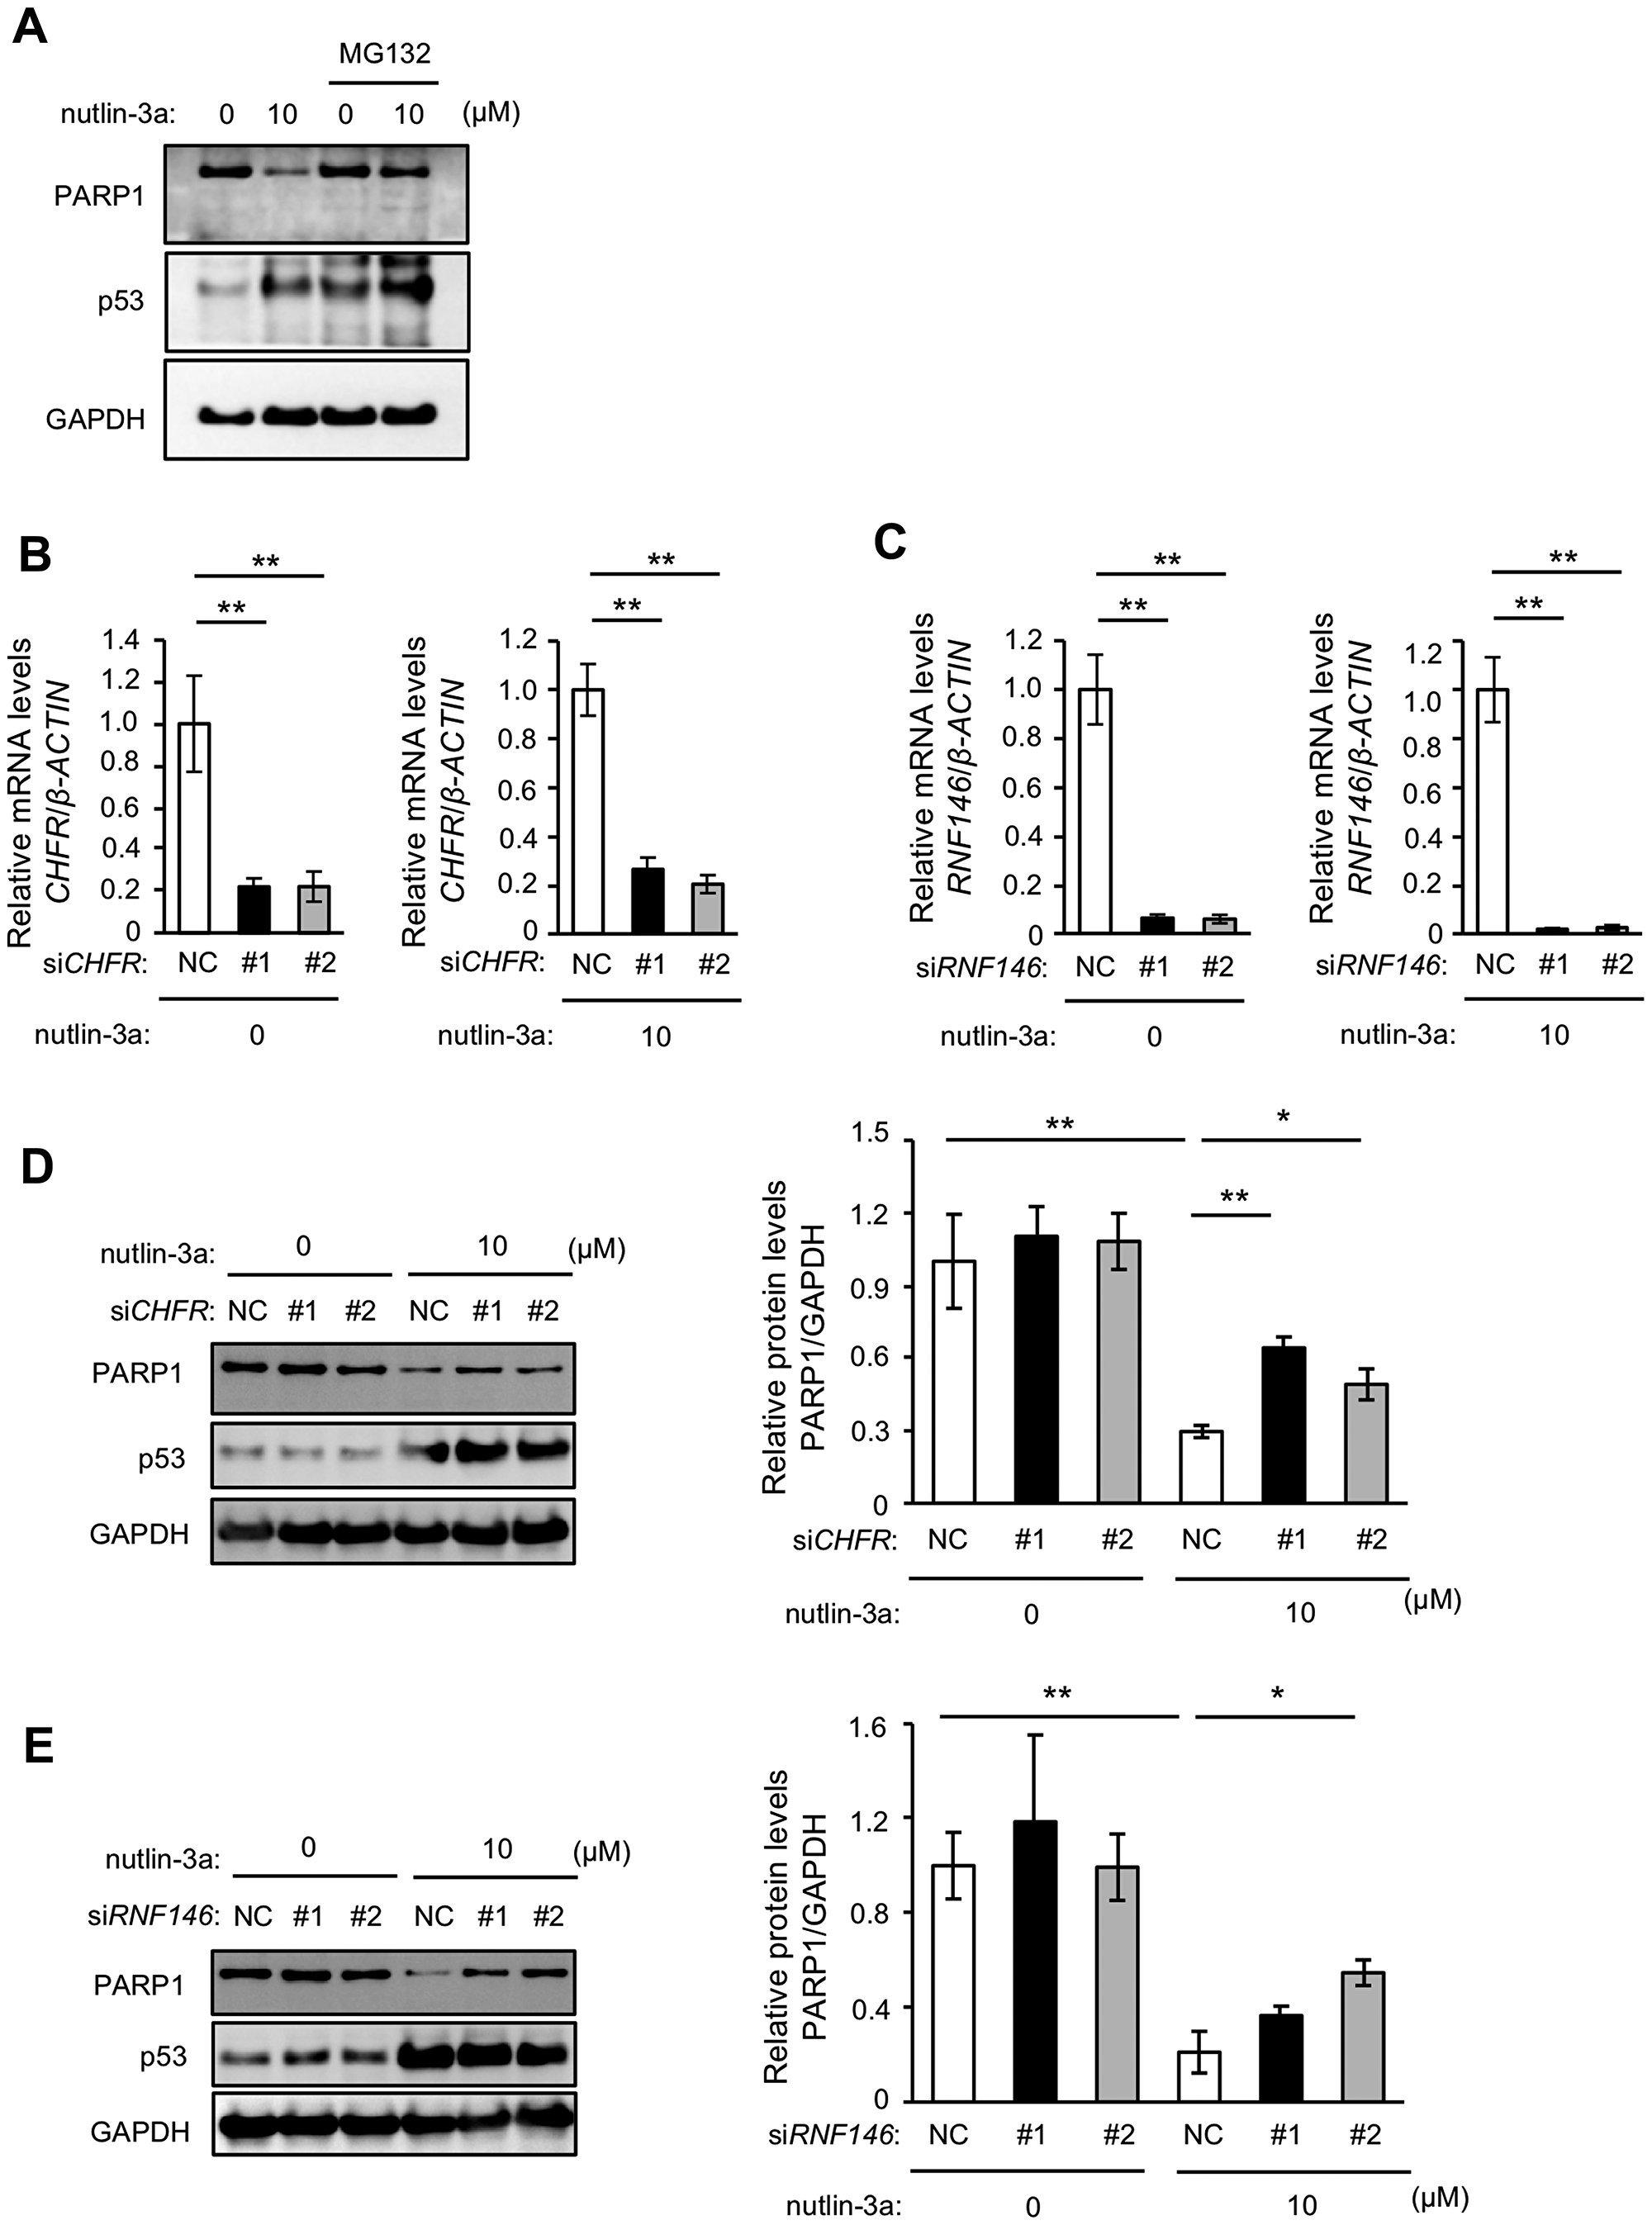 Nutlin-3a-induced PARP1 protein reduction is mediated by proteasomal degradation.